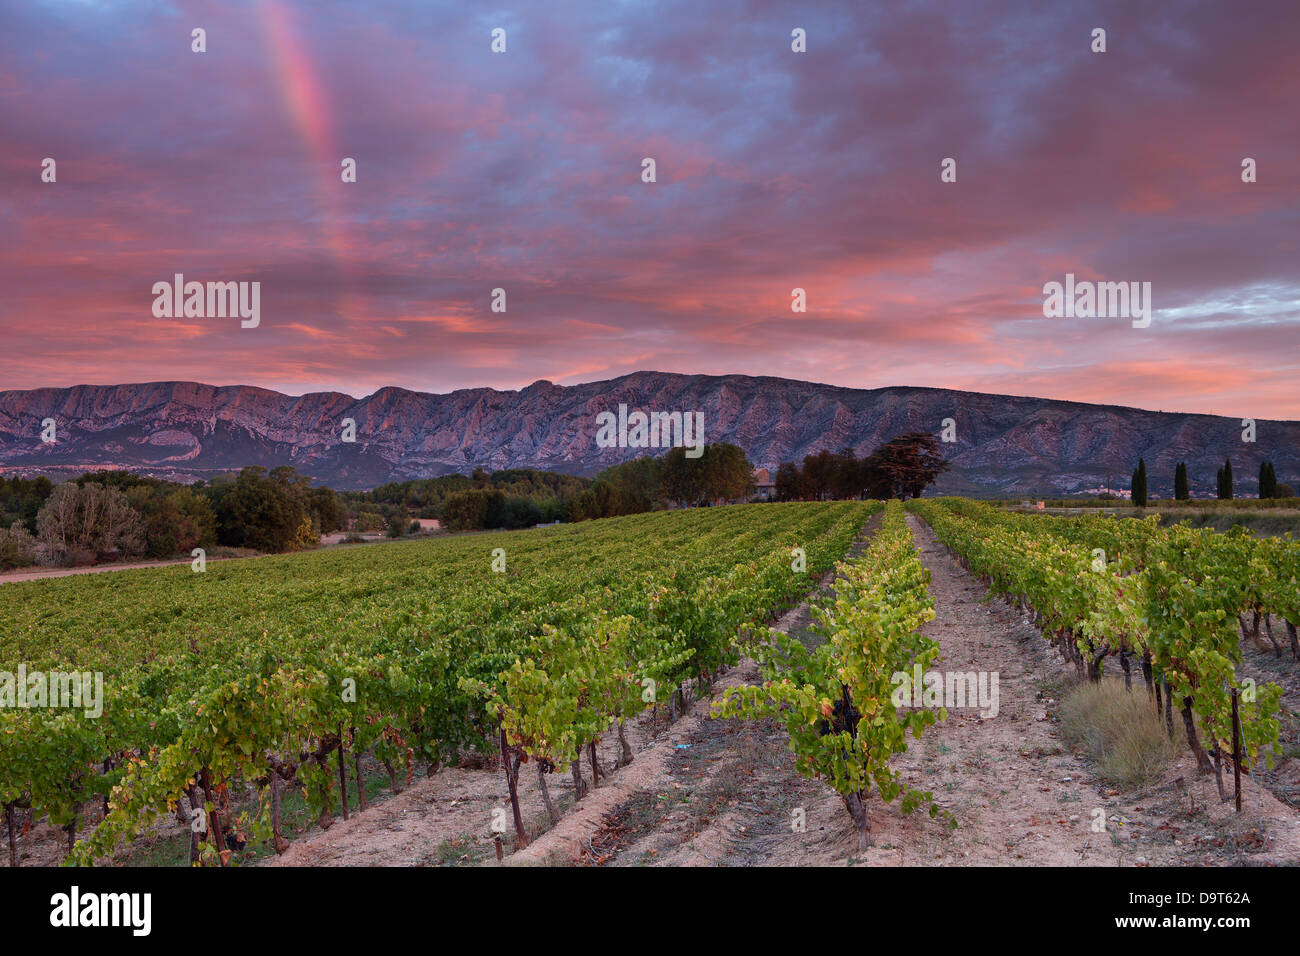 a vineyard nr Puyloubier with the Montagne Ste Victoire at dawn, Var, Provence, France - Stock Image